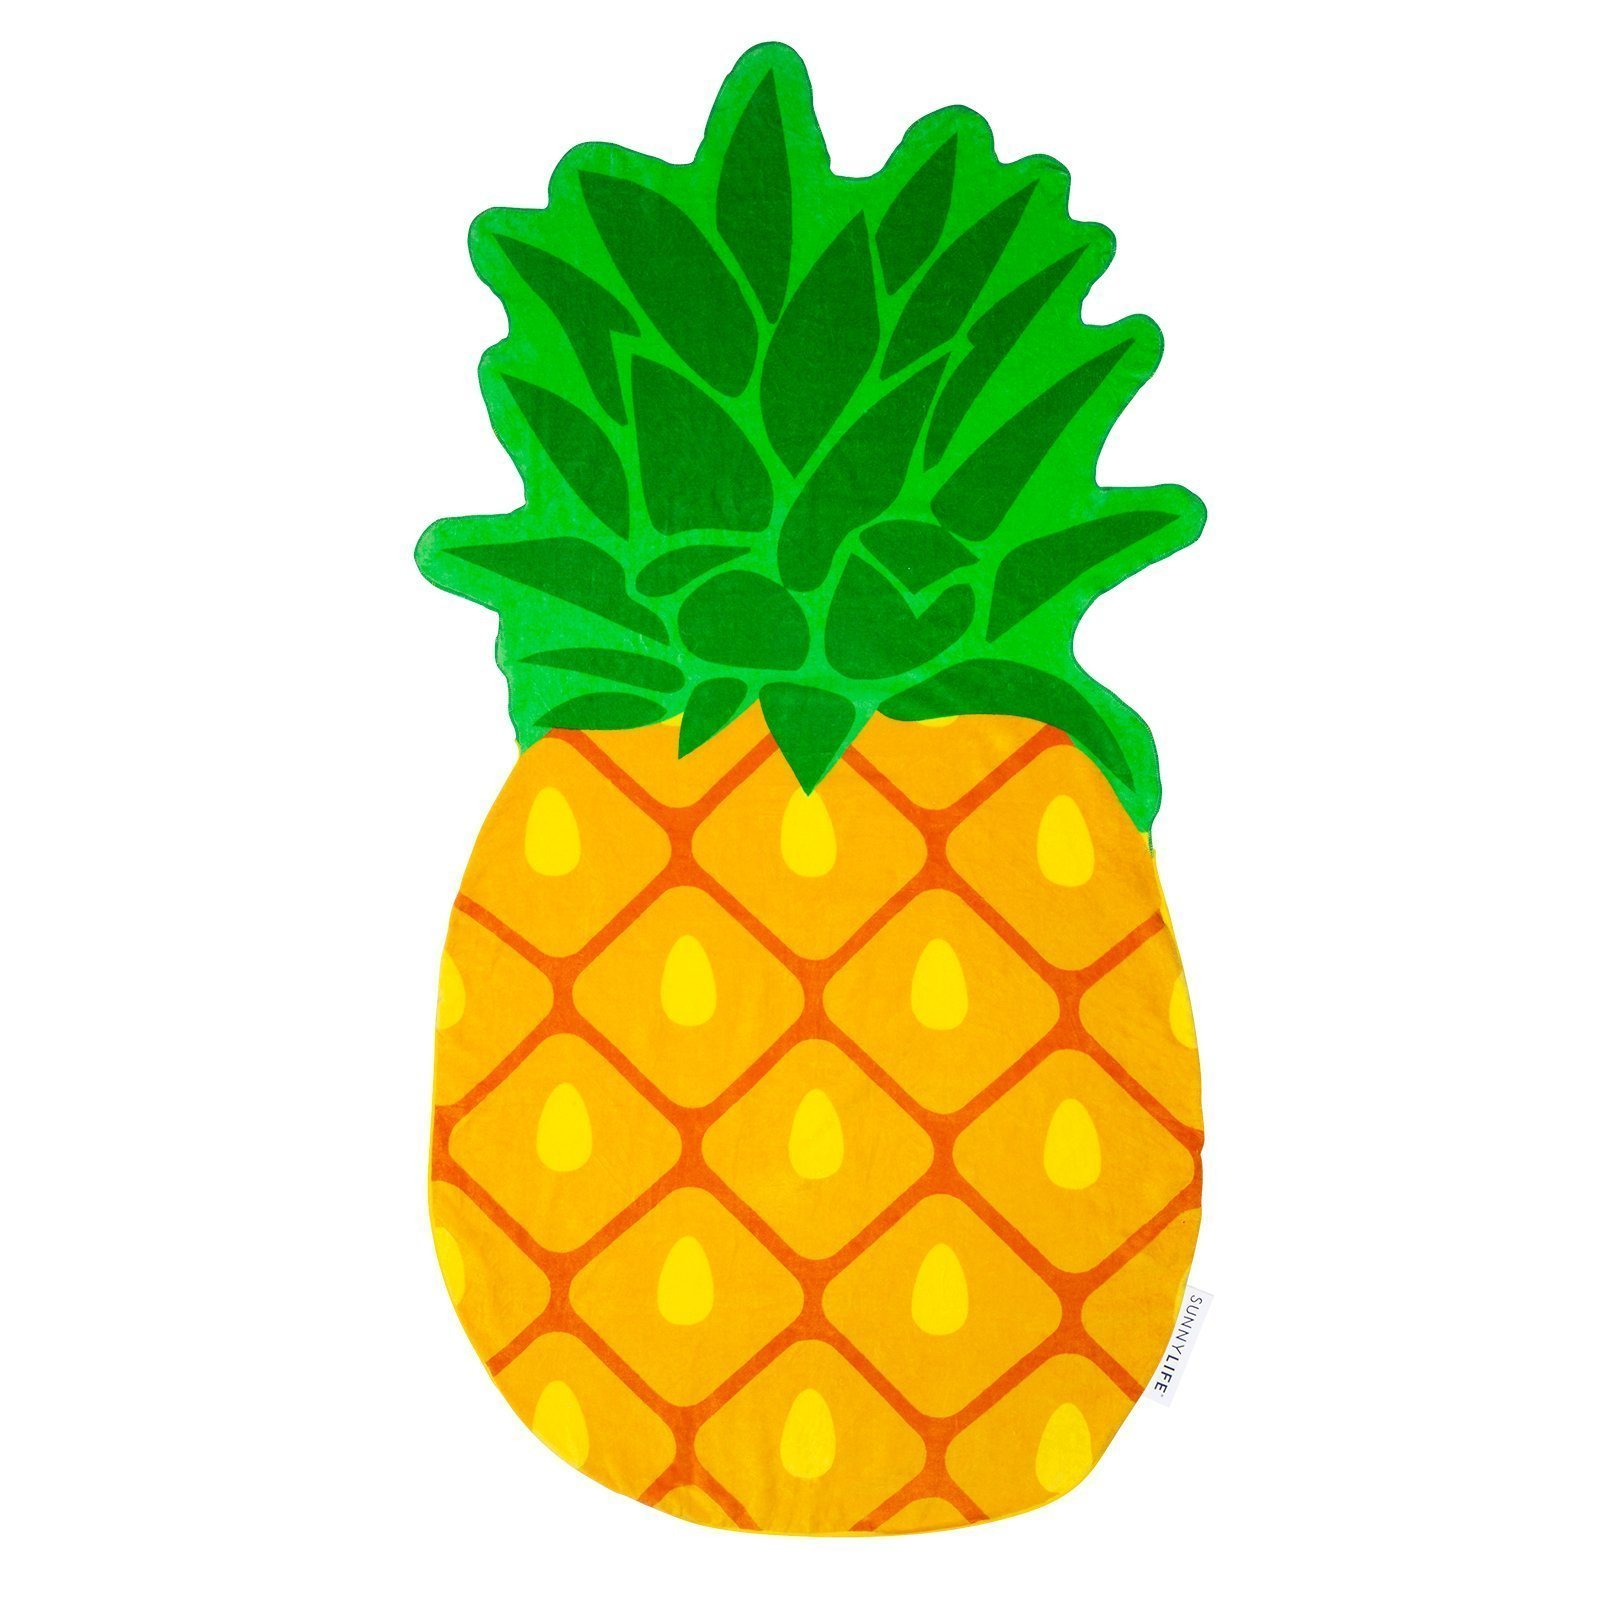 https://www.sunnylife.com/collections/all-products/products/pineapple-shaped-towel-ss18